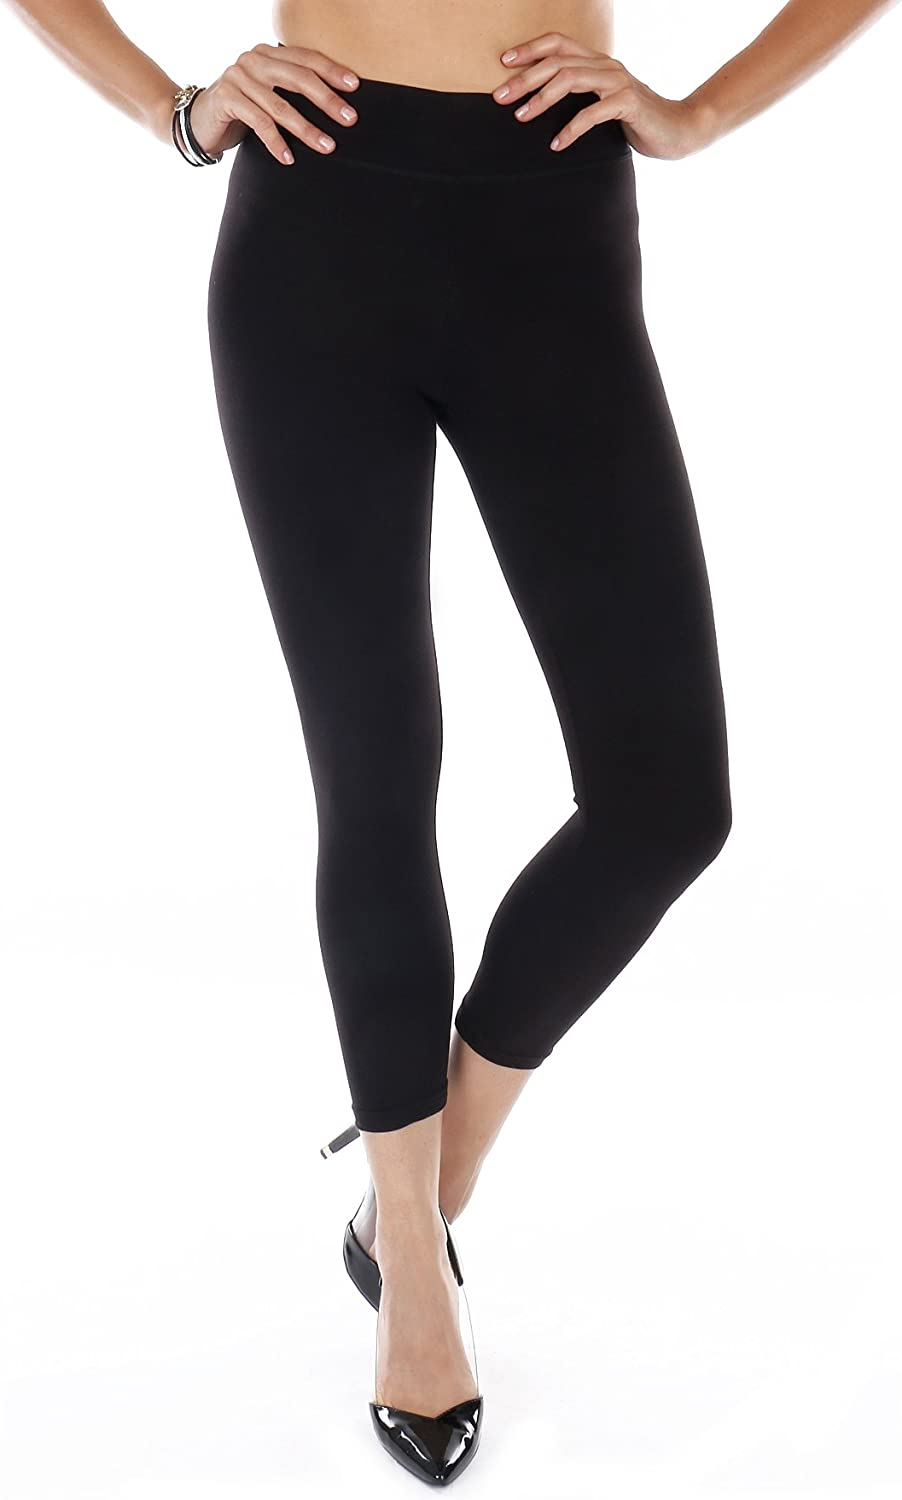 Premium Soft Cotton Capri Leggings- Stretchy, Breathable, Lightweight, Soft Cotton Fabric, 3-inches Wide Waistband